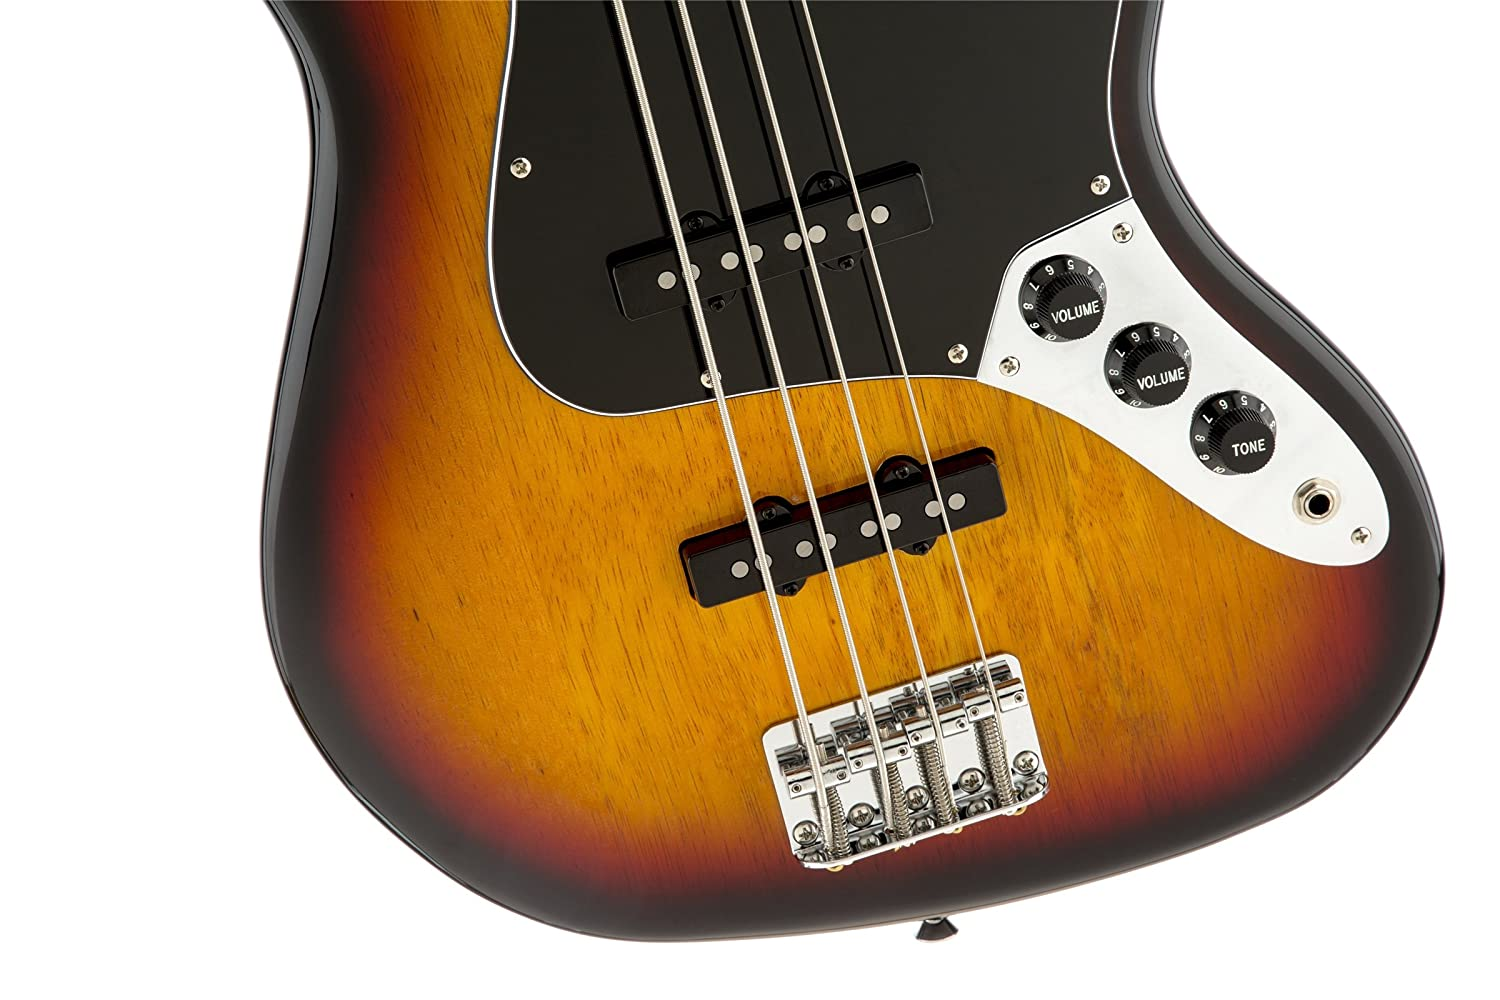 Squier By Fender 307702520 Vintage Modified Jazz Bass More Guitar Wiring 101 300guitarscom 77 Amber Musical Instruments